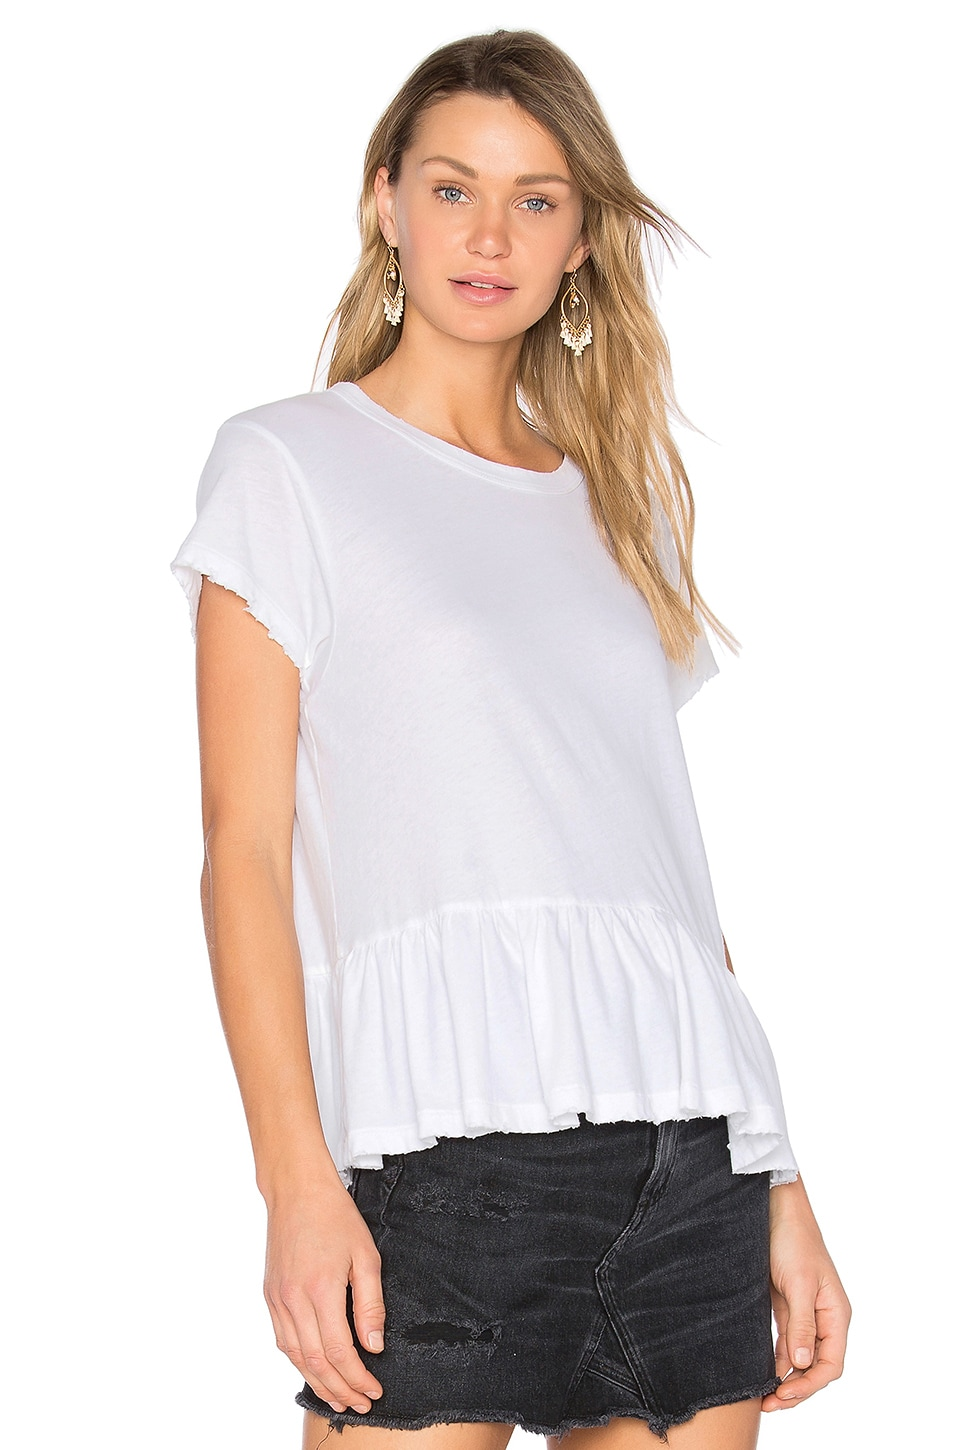 The Great The Ruffle Tee in True White